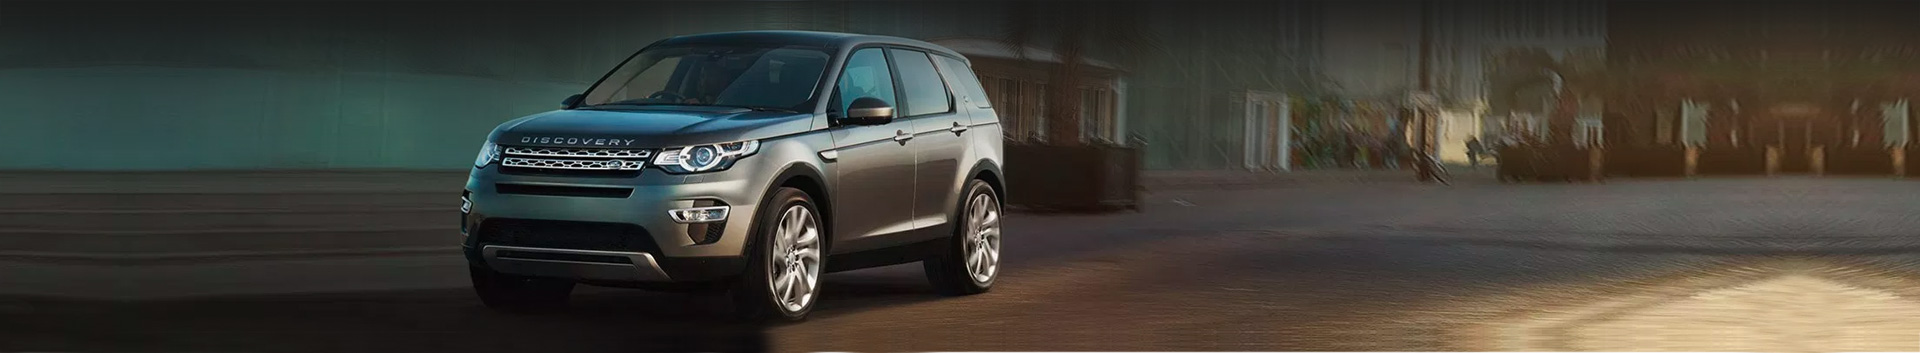 Finance your next Land Rover with us